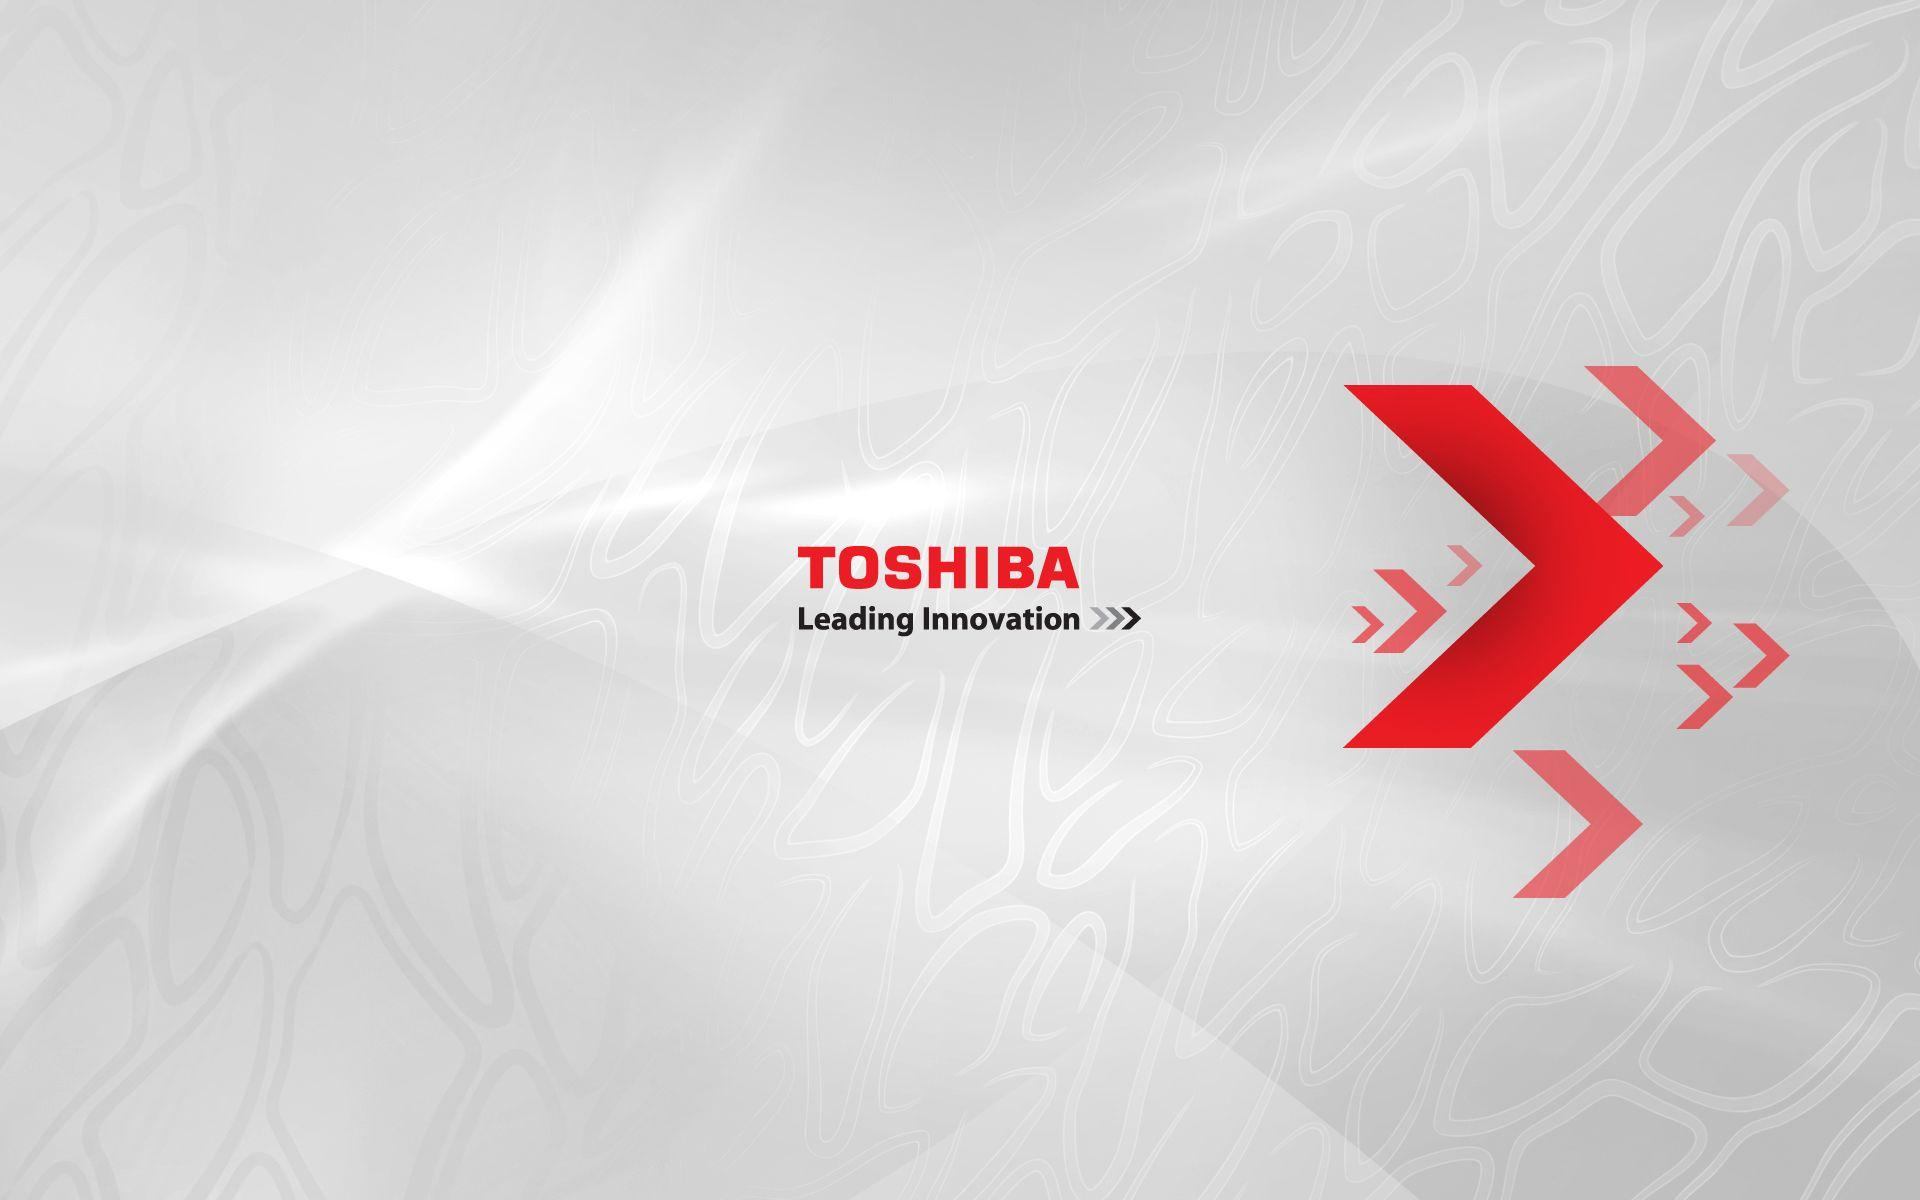 Toshiba Backgrounds Pictures Group